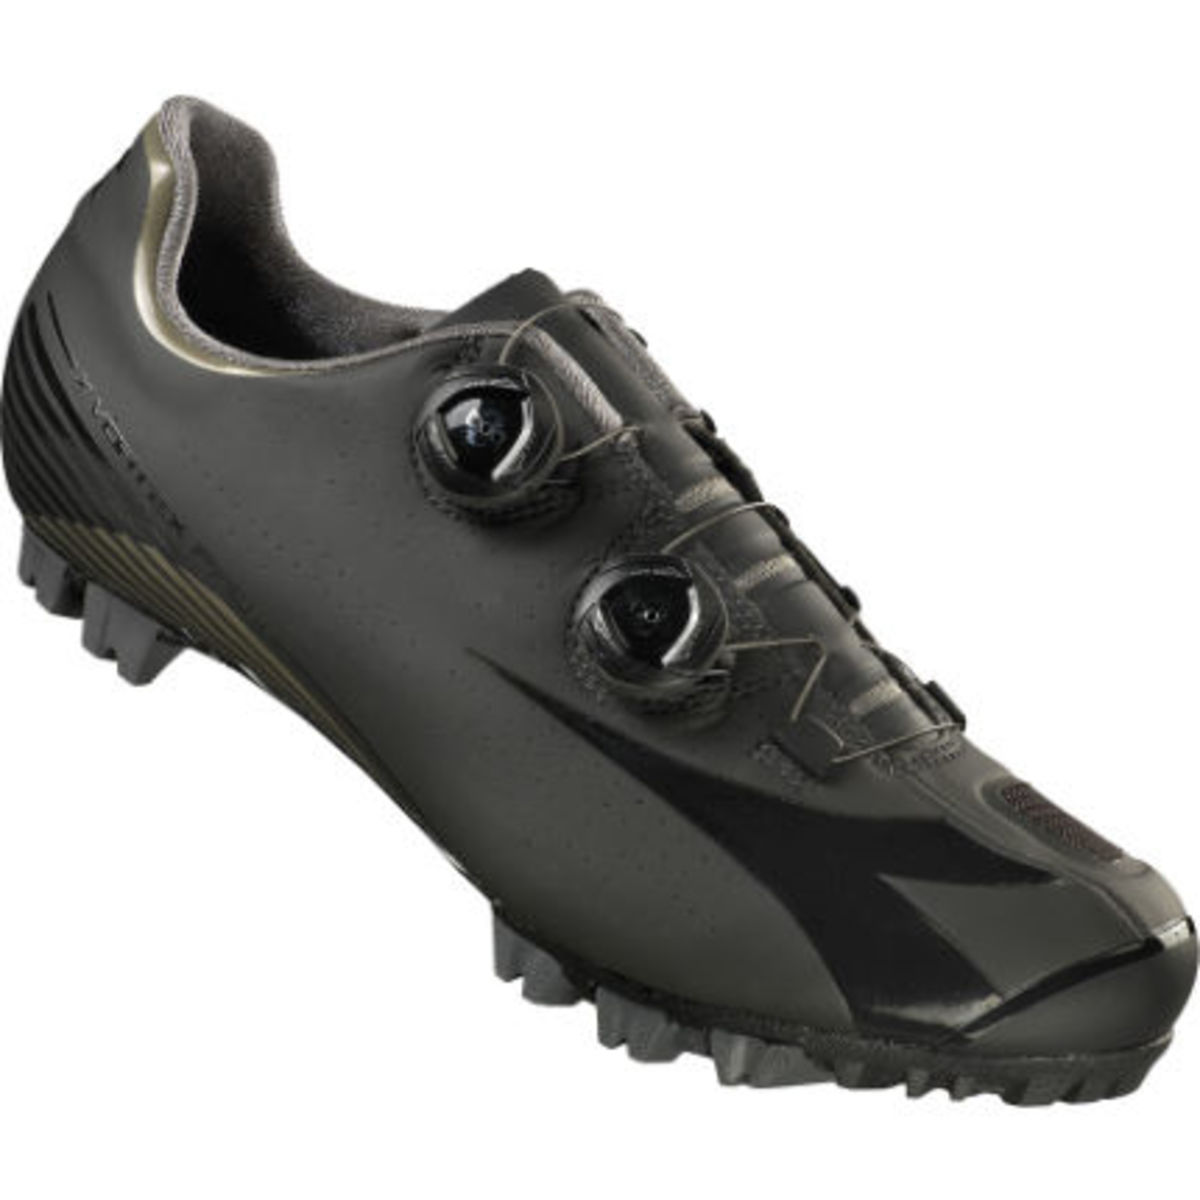 The stealth black colour scheme of the Diadora X Vortex Pro II MTB shoes.